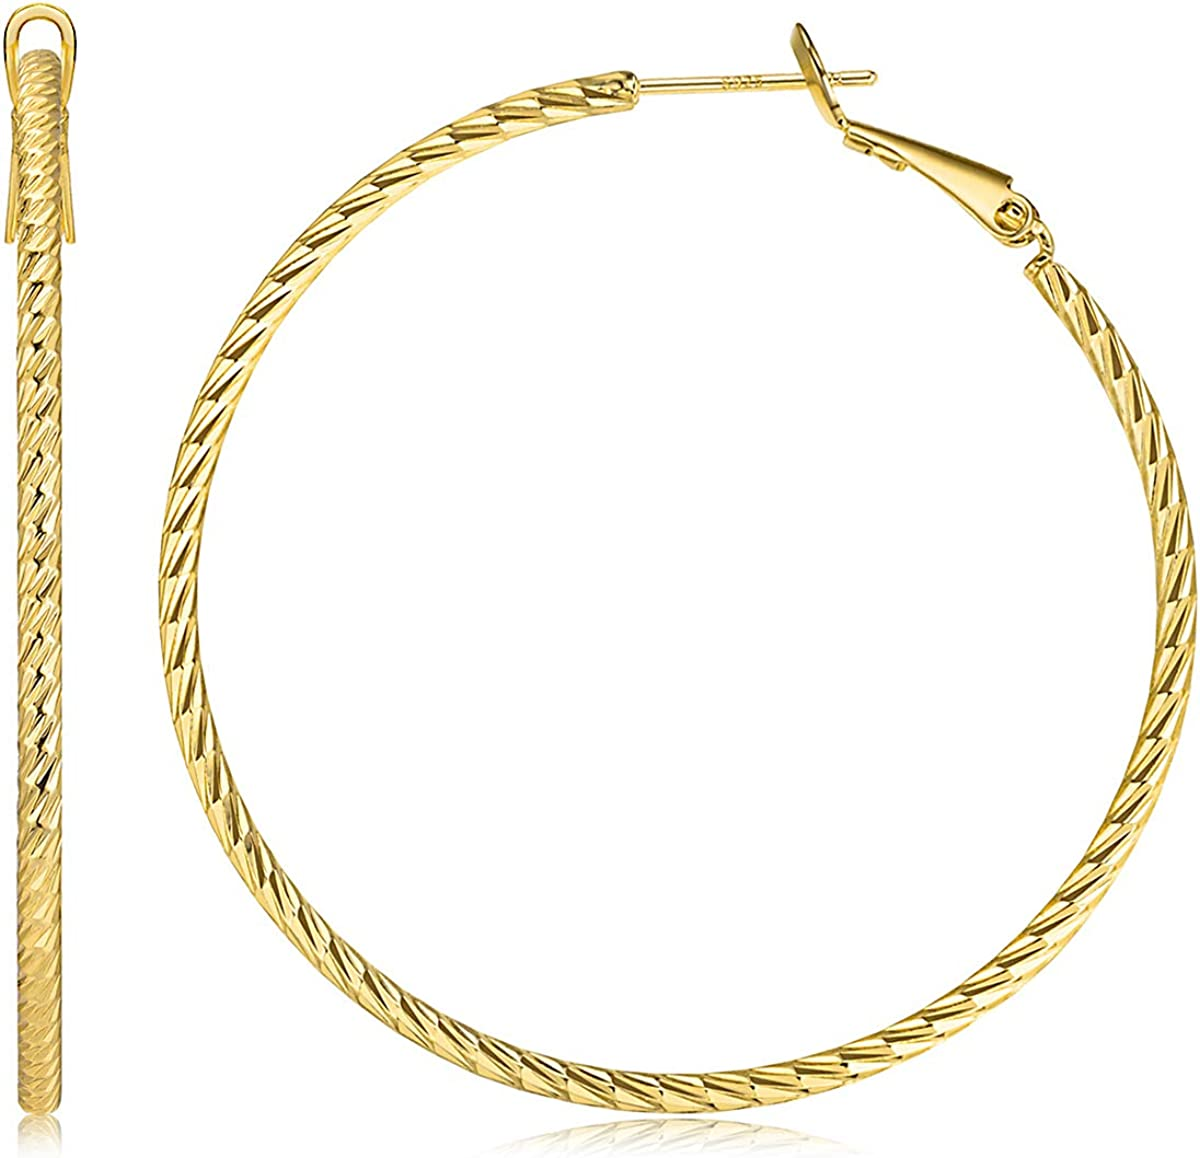 Kainier Big Hoop Earrings 14K Gold National products Silver Baltimore Mall Po Plated 925 Sterling